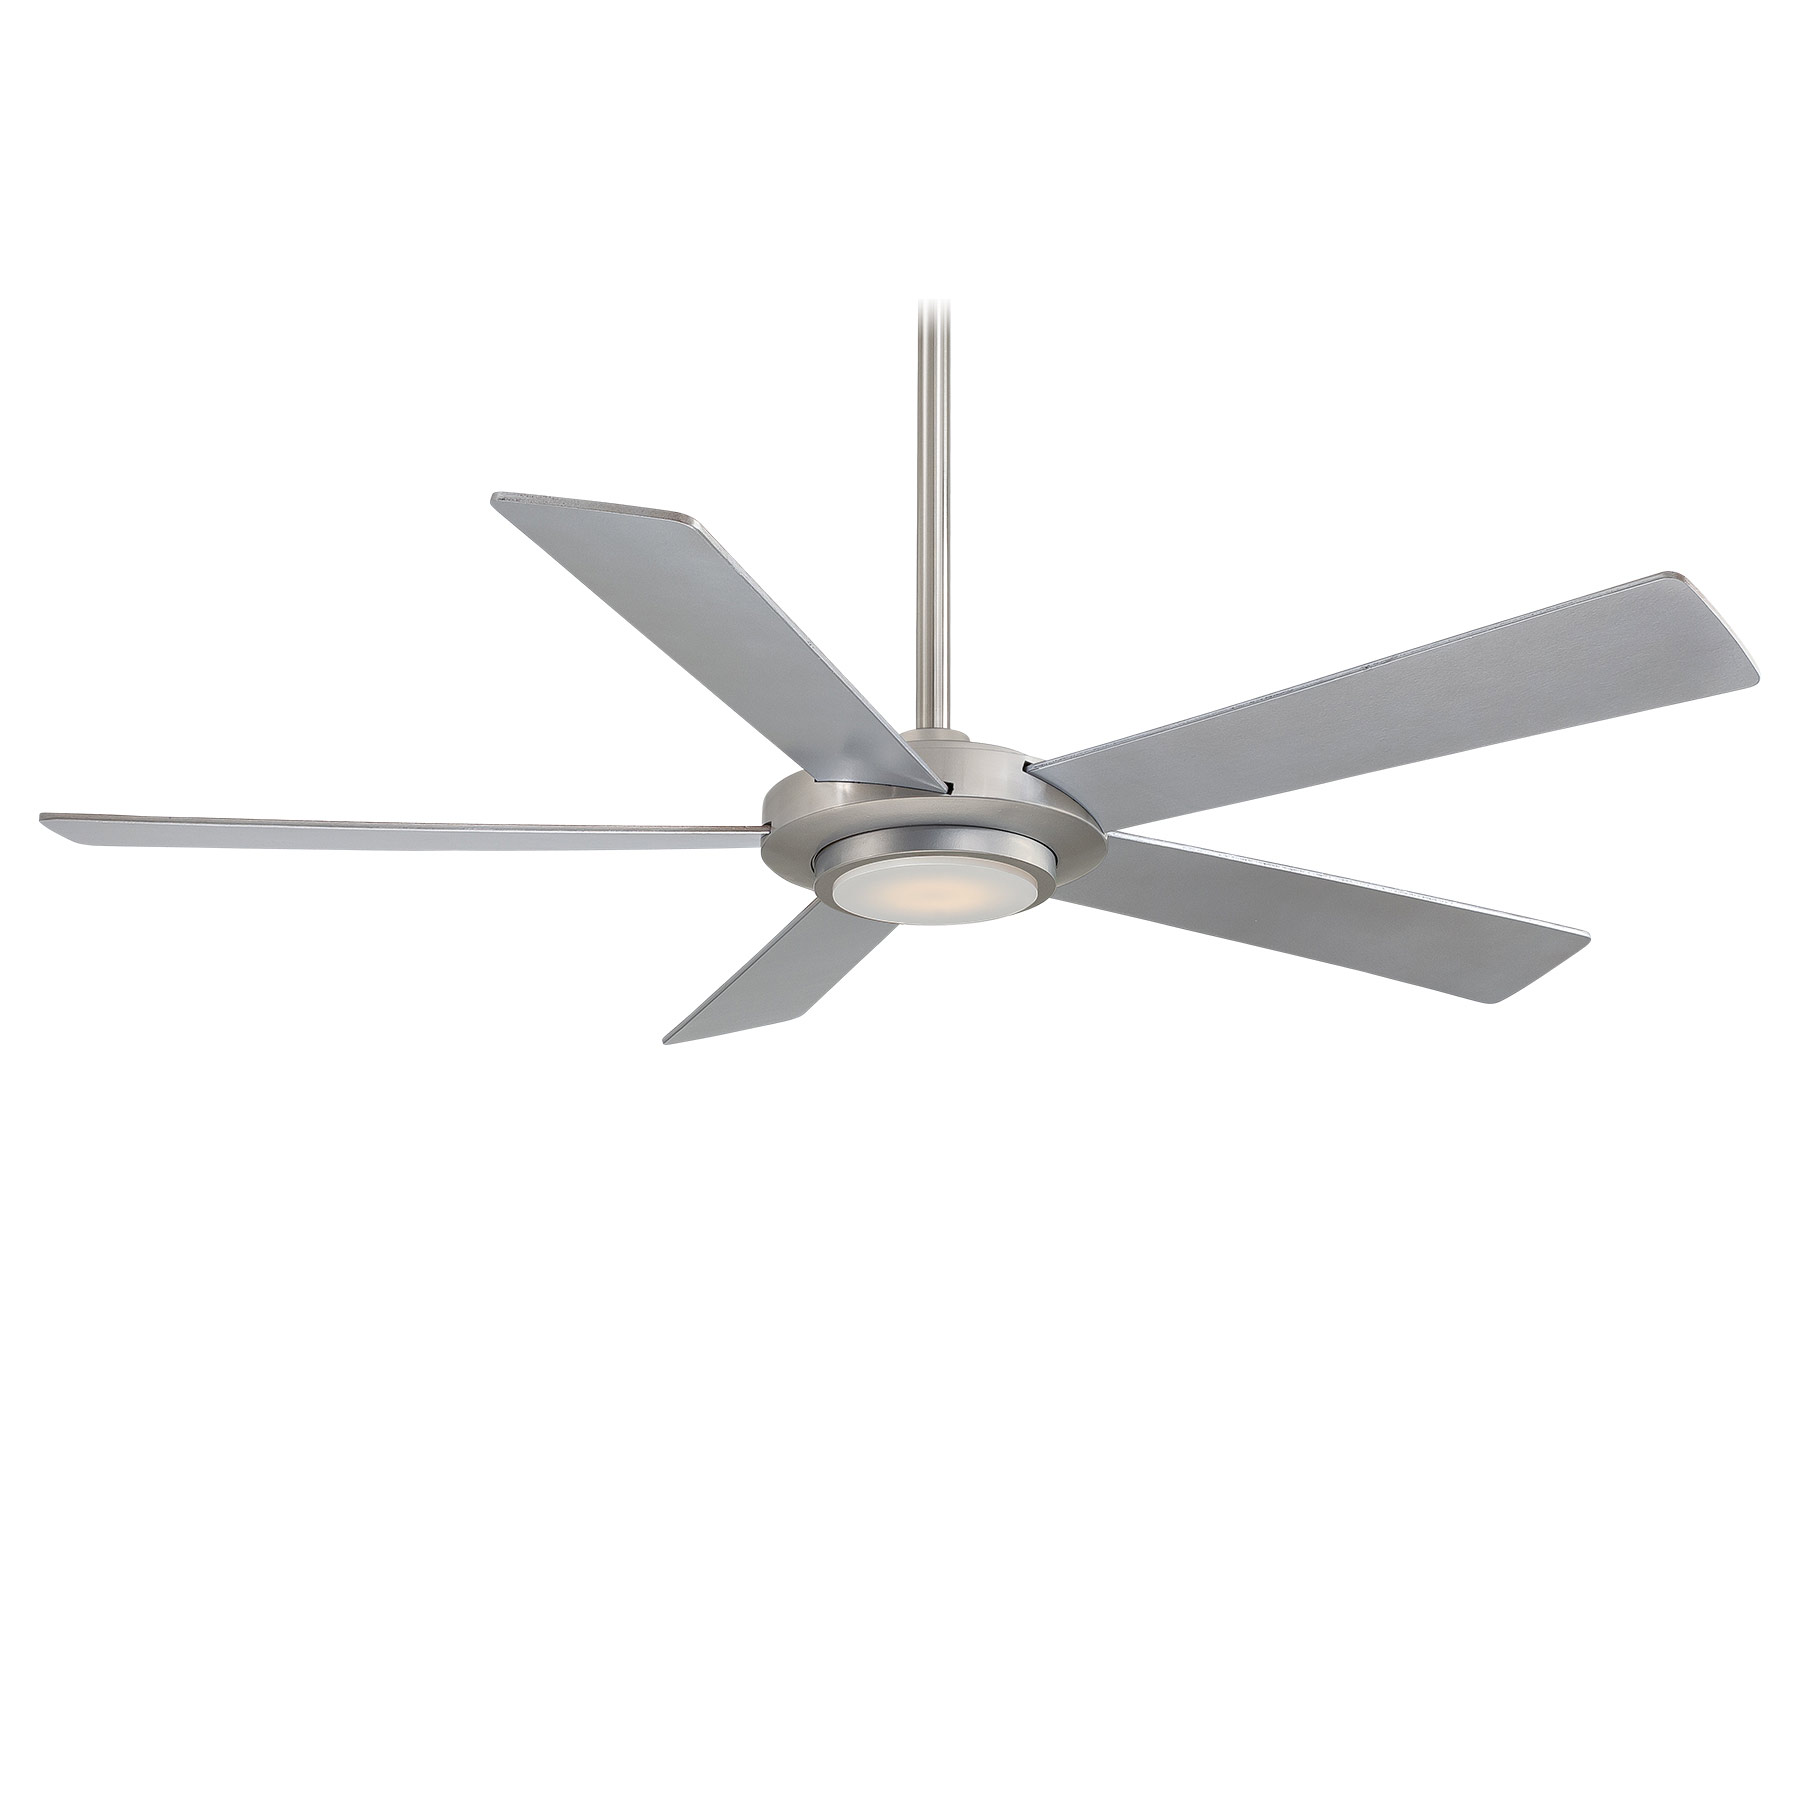 sabot ceiling fan with light by minka aire f745bn - Flush Mount Ceiling Fans